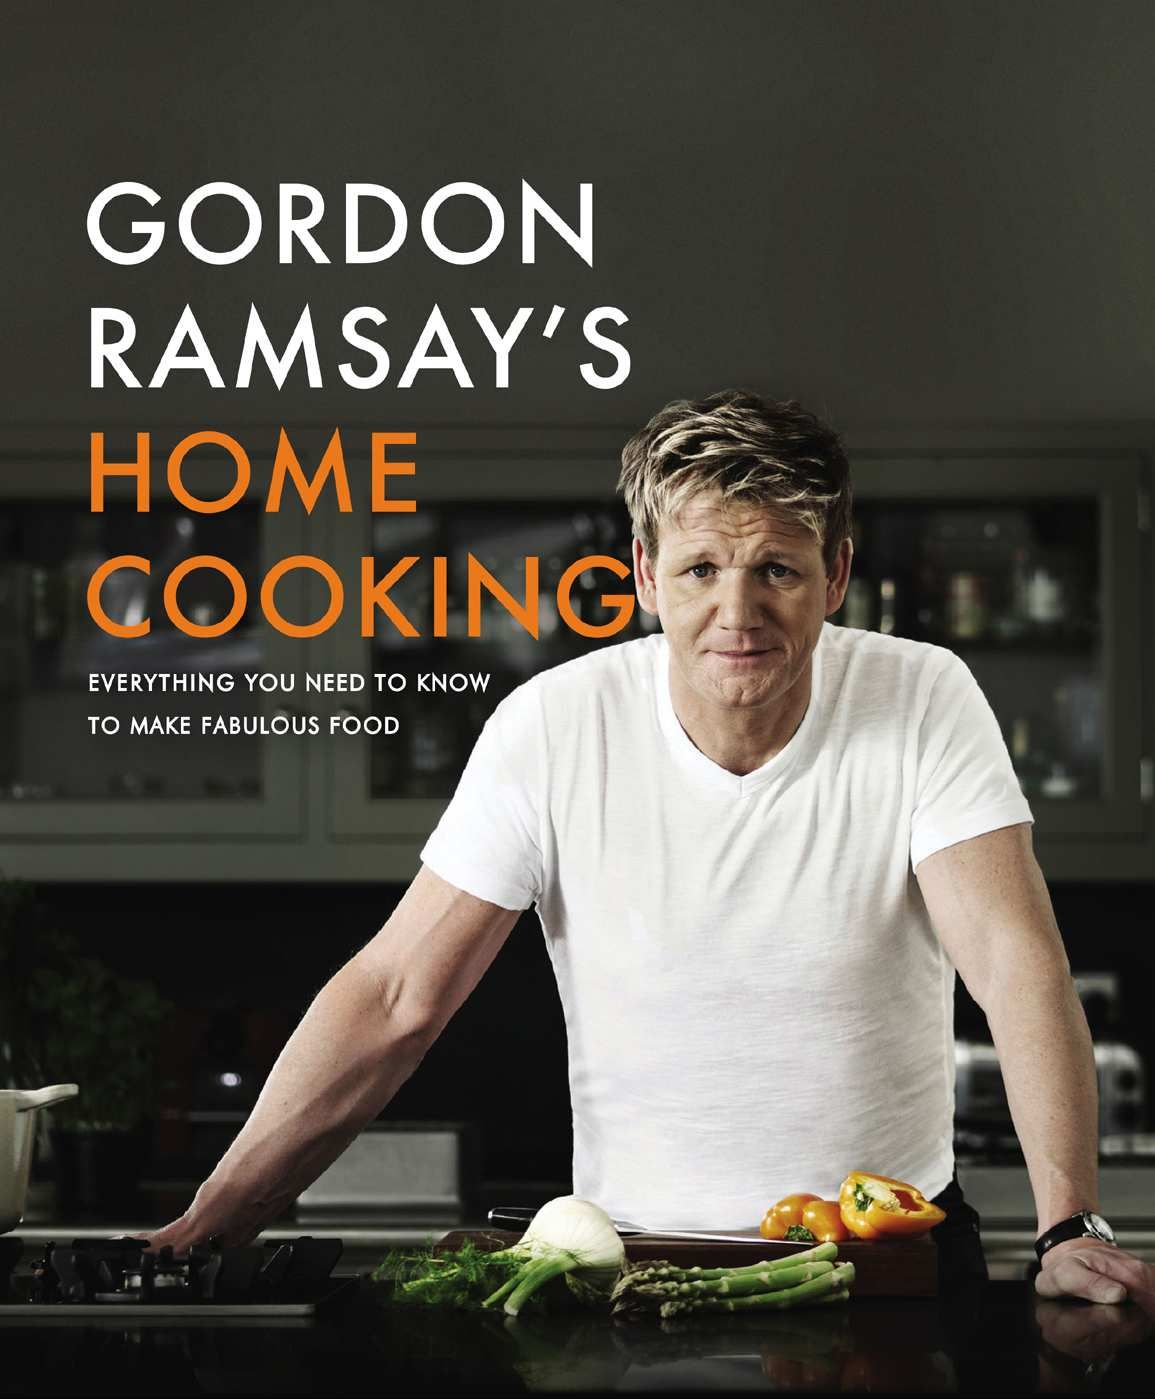 Gordon ramsays home cooking everything you need to know